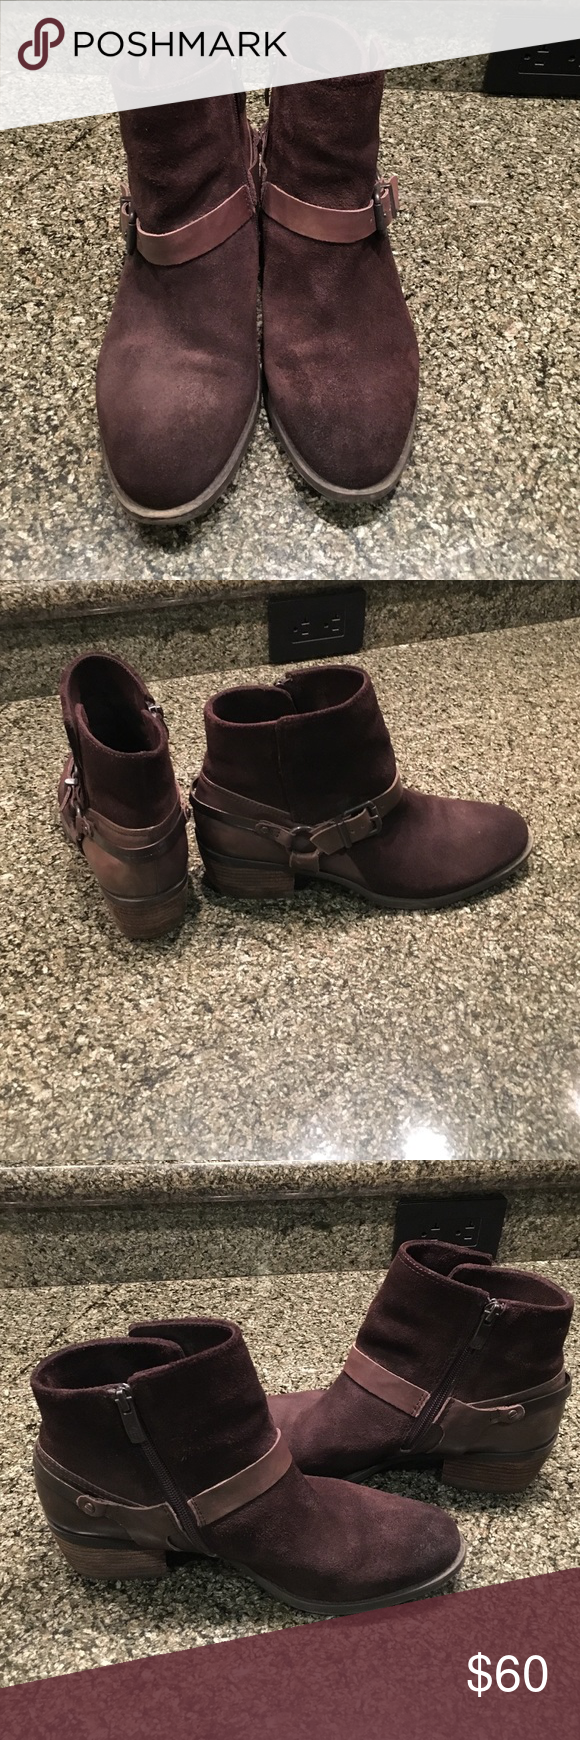 Vince Camuto boots Cute comfortable suede booties with the distressed look they have already been waterproofed. Vince Camuto Shoes Ankle Boots & Booties